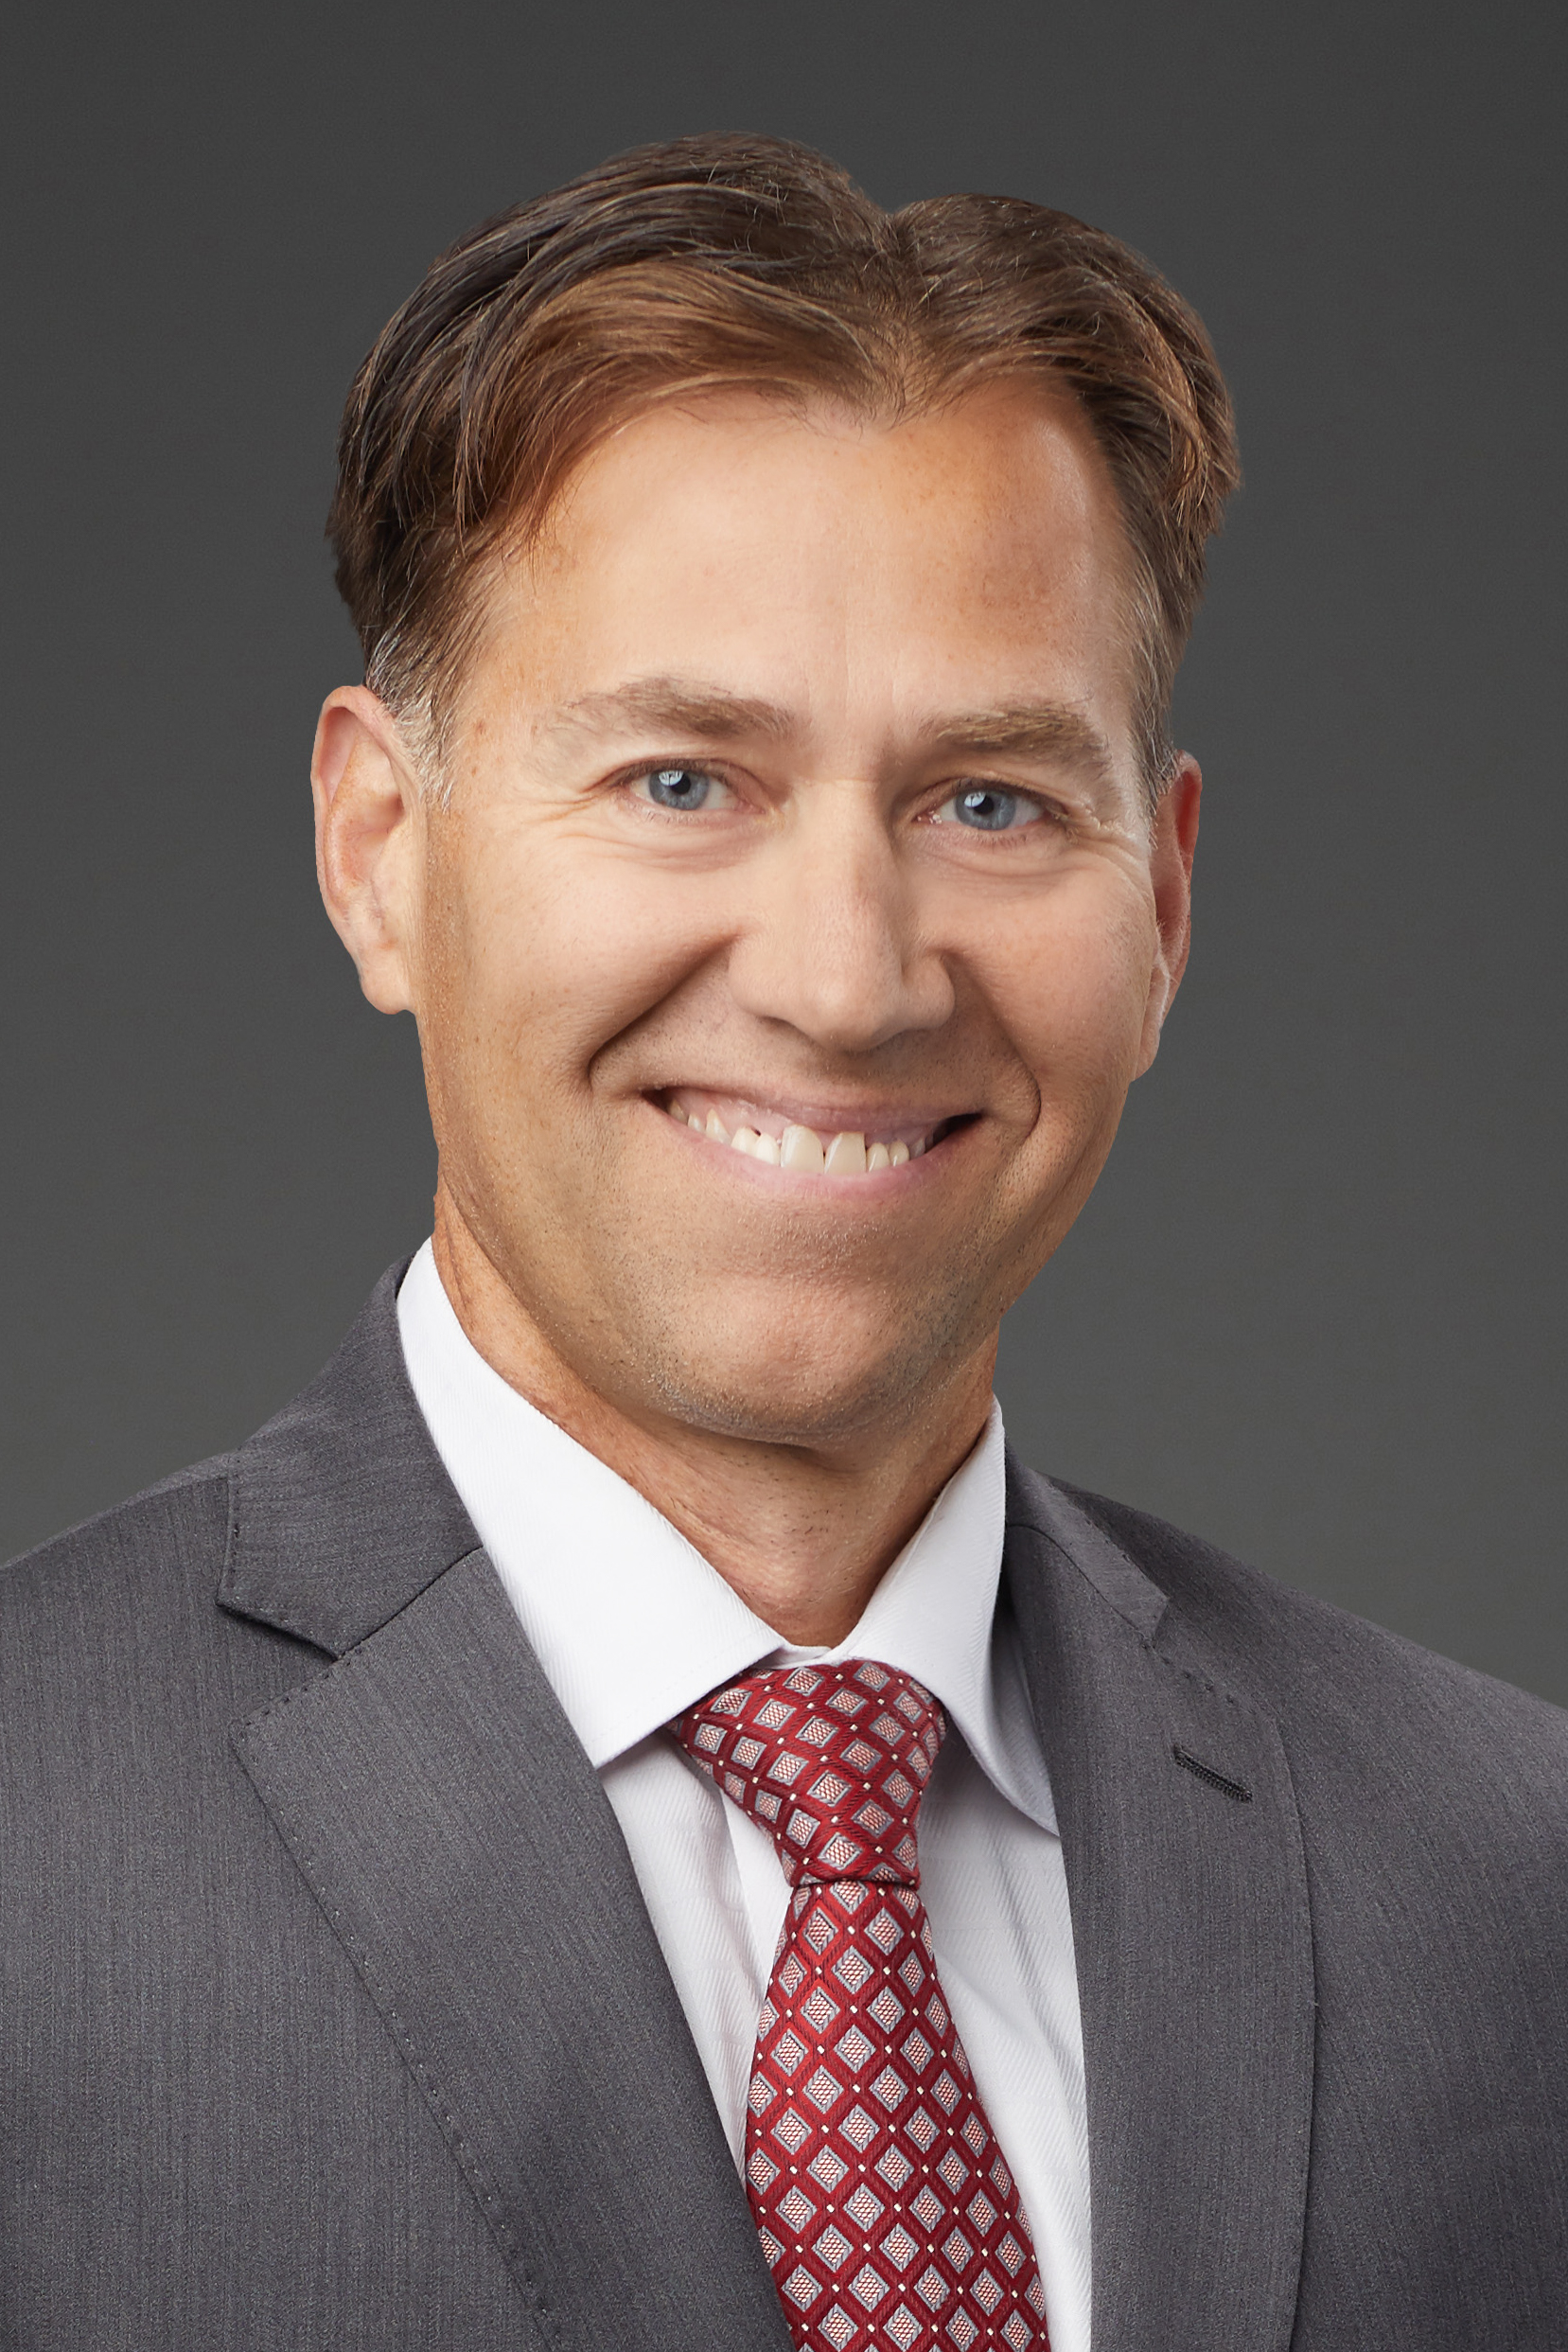 Austrian Honorary Consul  Reinhold Krammer  is a principal with the law office  Masuda Funai  in Chicago and specializes in serving European clients.